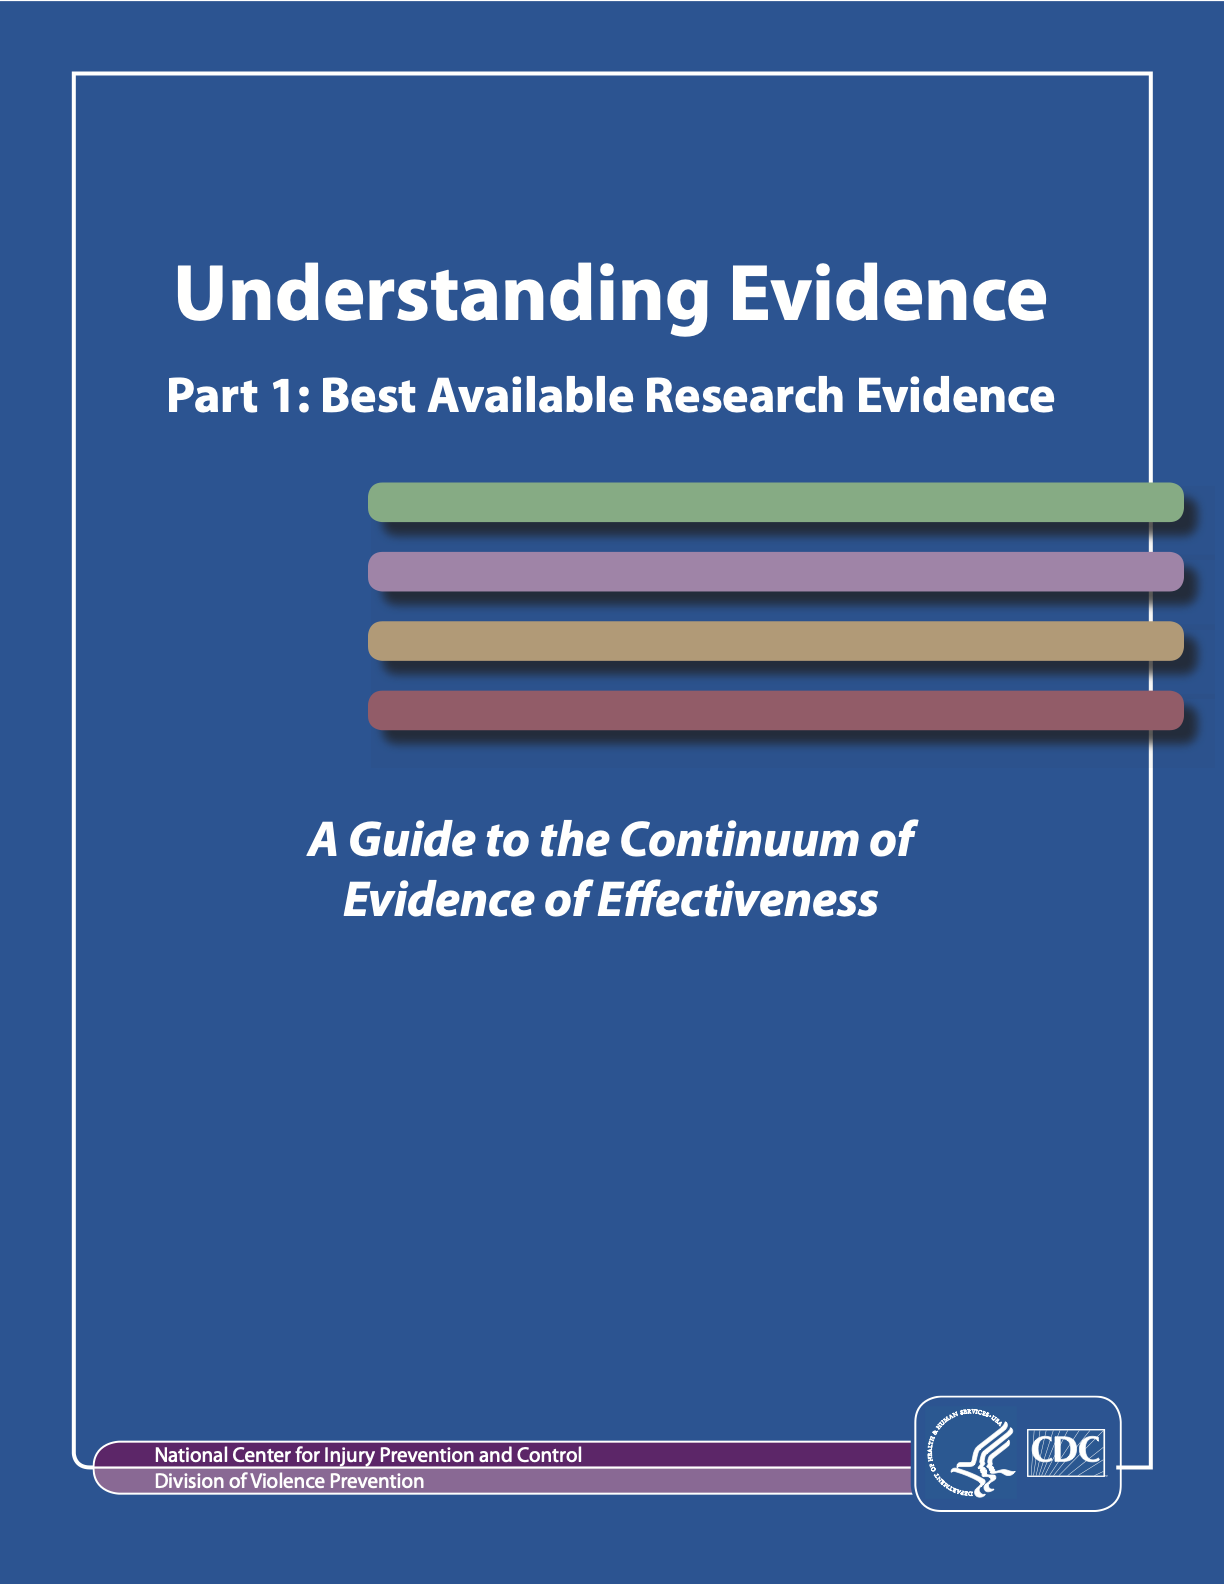 Understanding Evidence: The Centers for Disease Control and Prevention (CDC) Tool